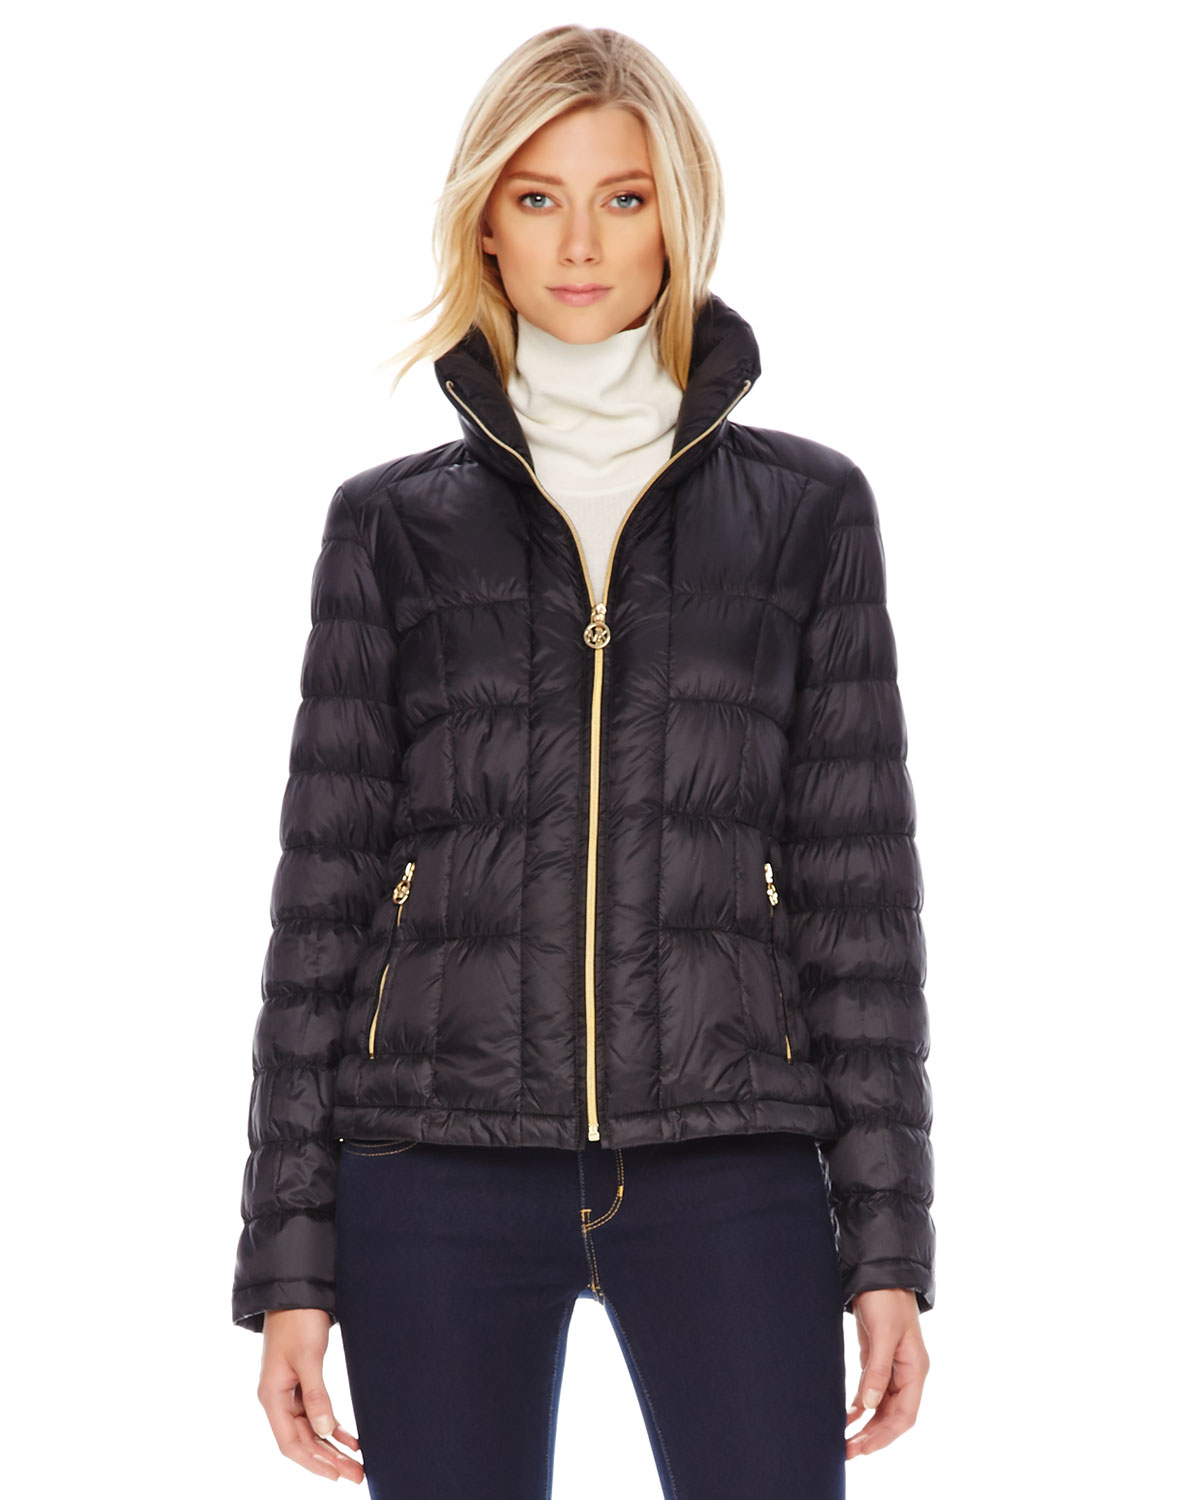 Michael kors Short Puffer Jacket in Black | Lyst